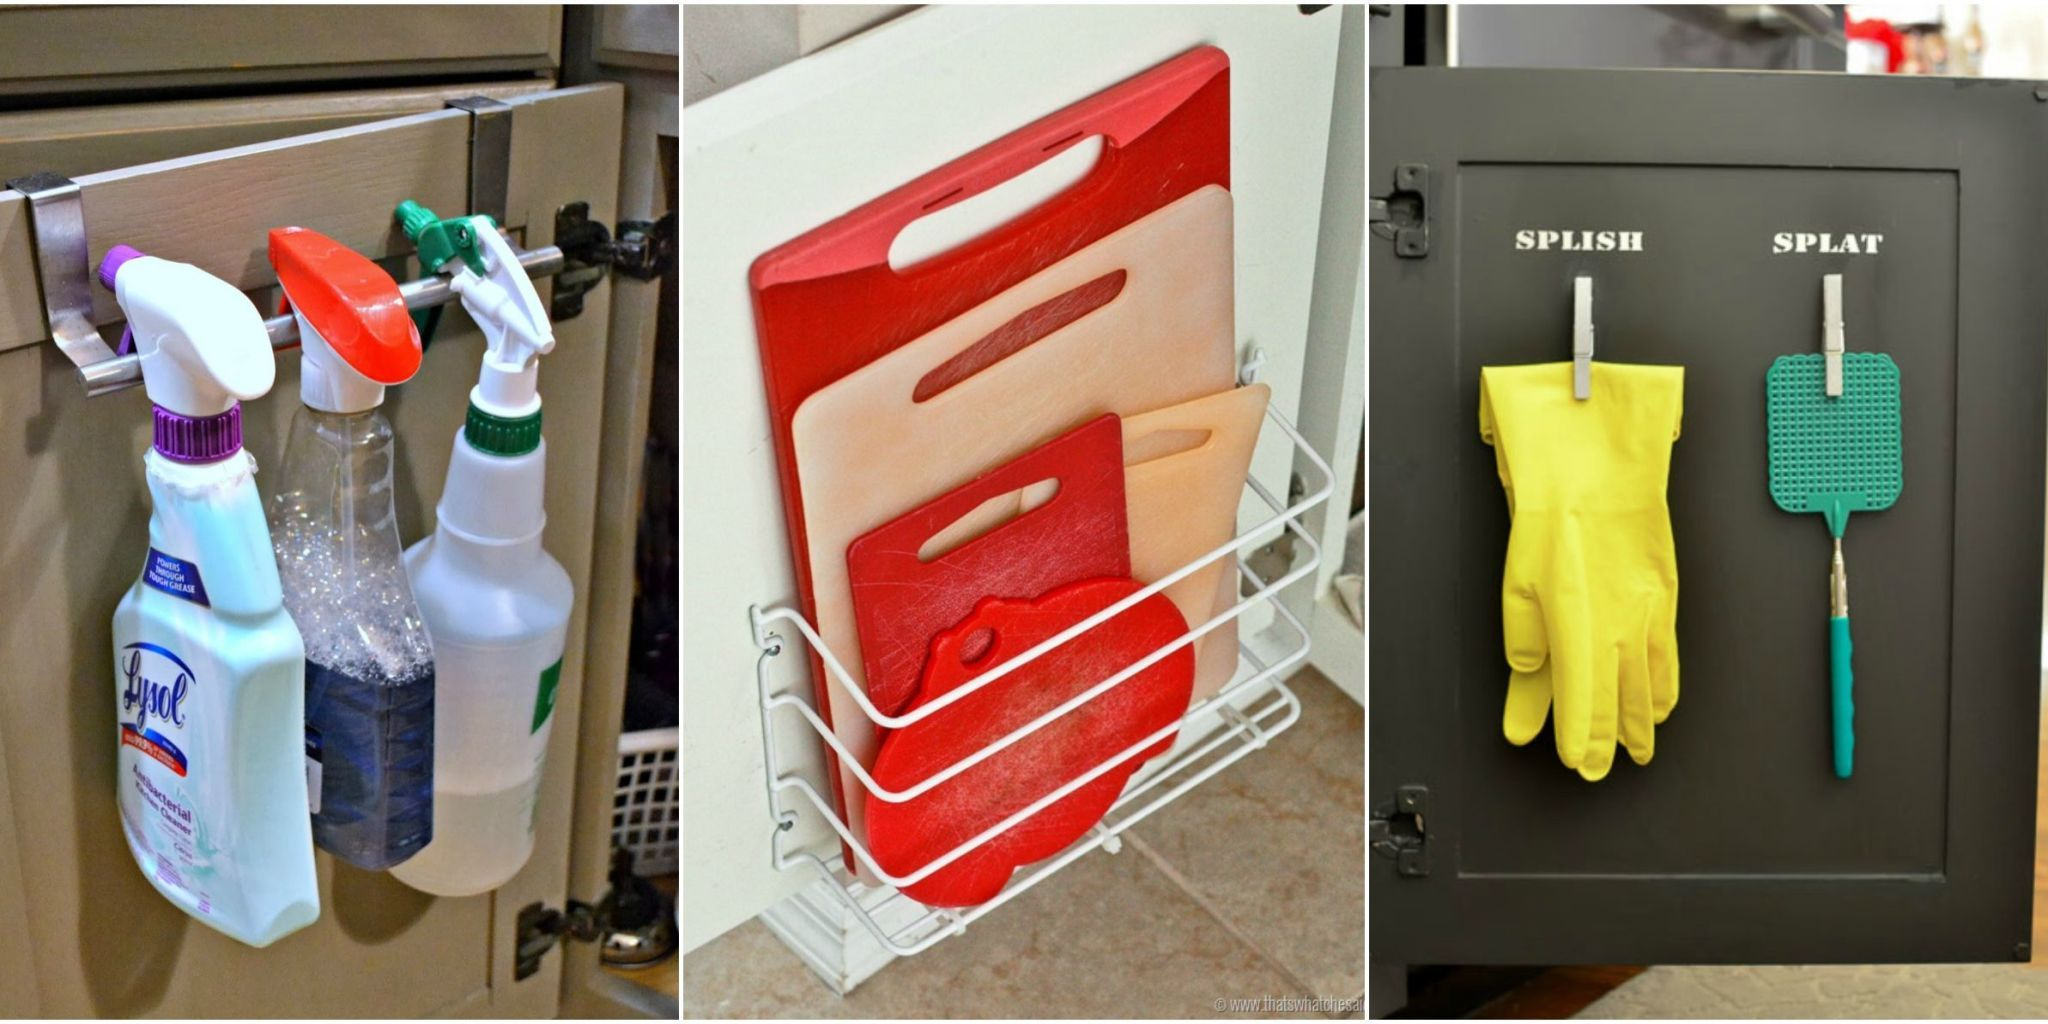 15 Genius Ways to Make Use of the Back of Your Cabinet Doors